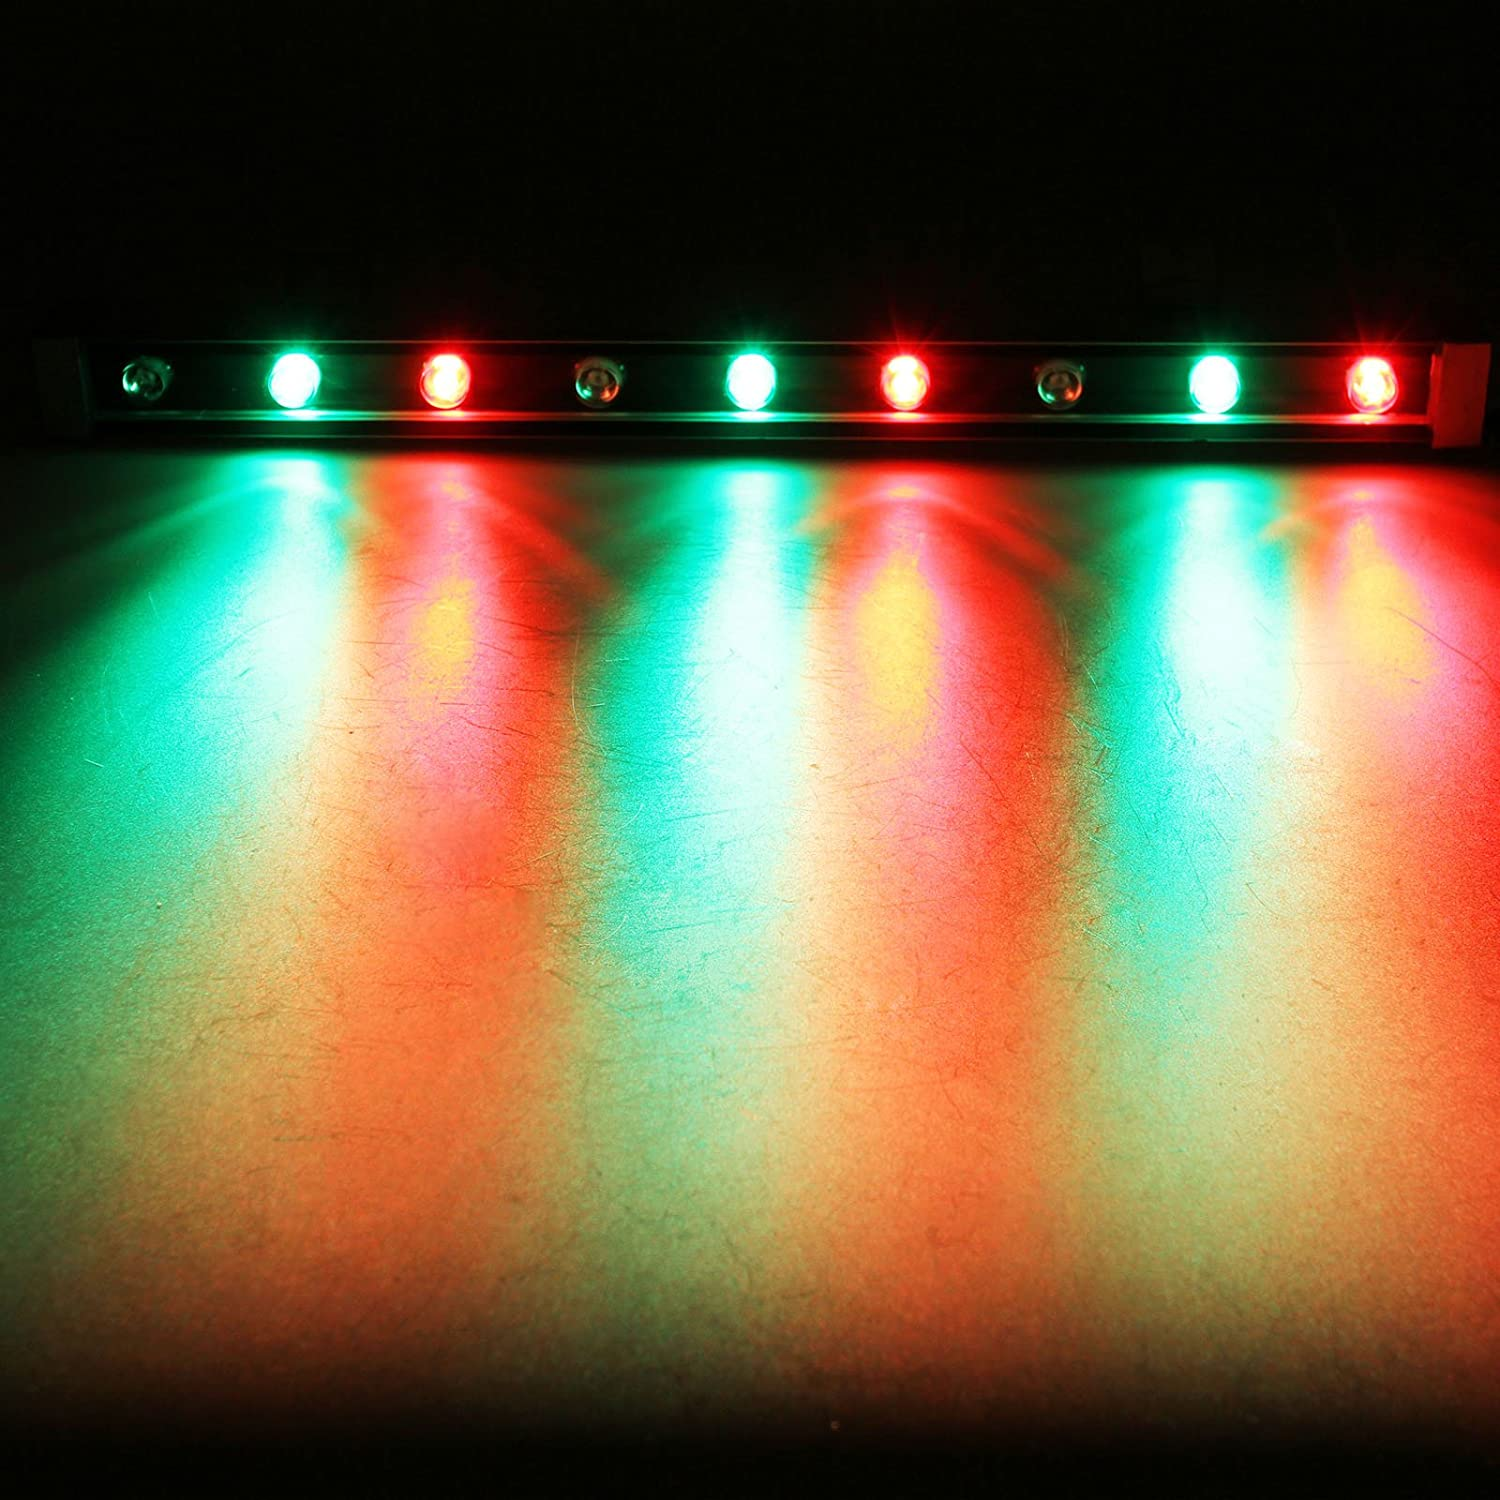 outdoor wall wash lighting. Amazon.com: TSSS 9W RGB LED Wall Wash Bar Light Waterproof Aluminum Alloy DJ Stage Background Lighting For Outdoor Party,Wedding, Restaurant, Venues, T